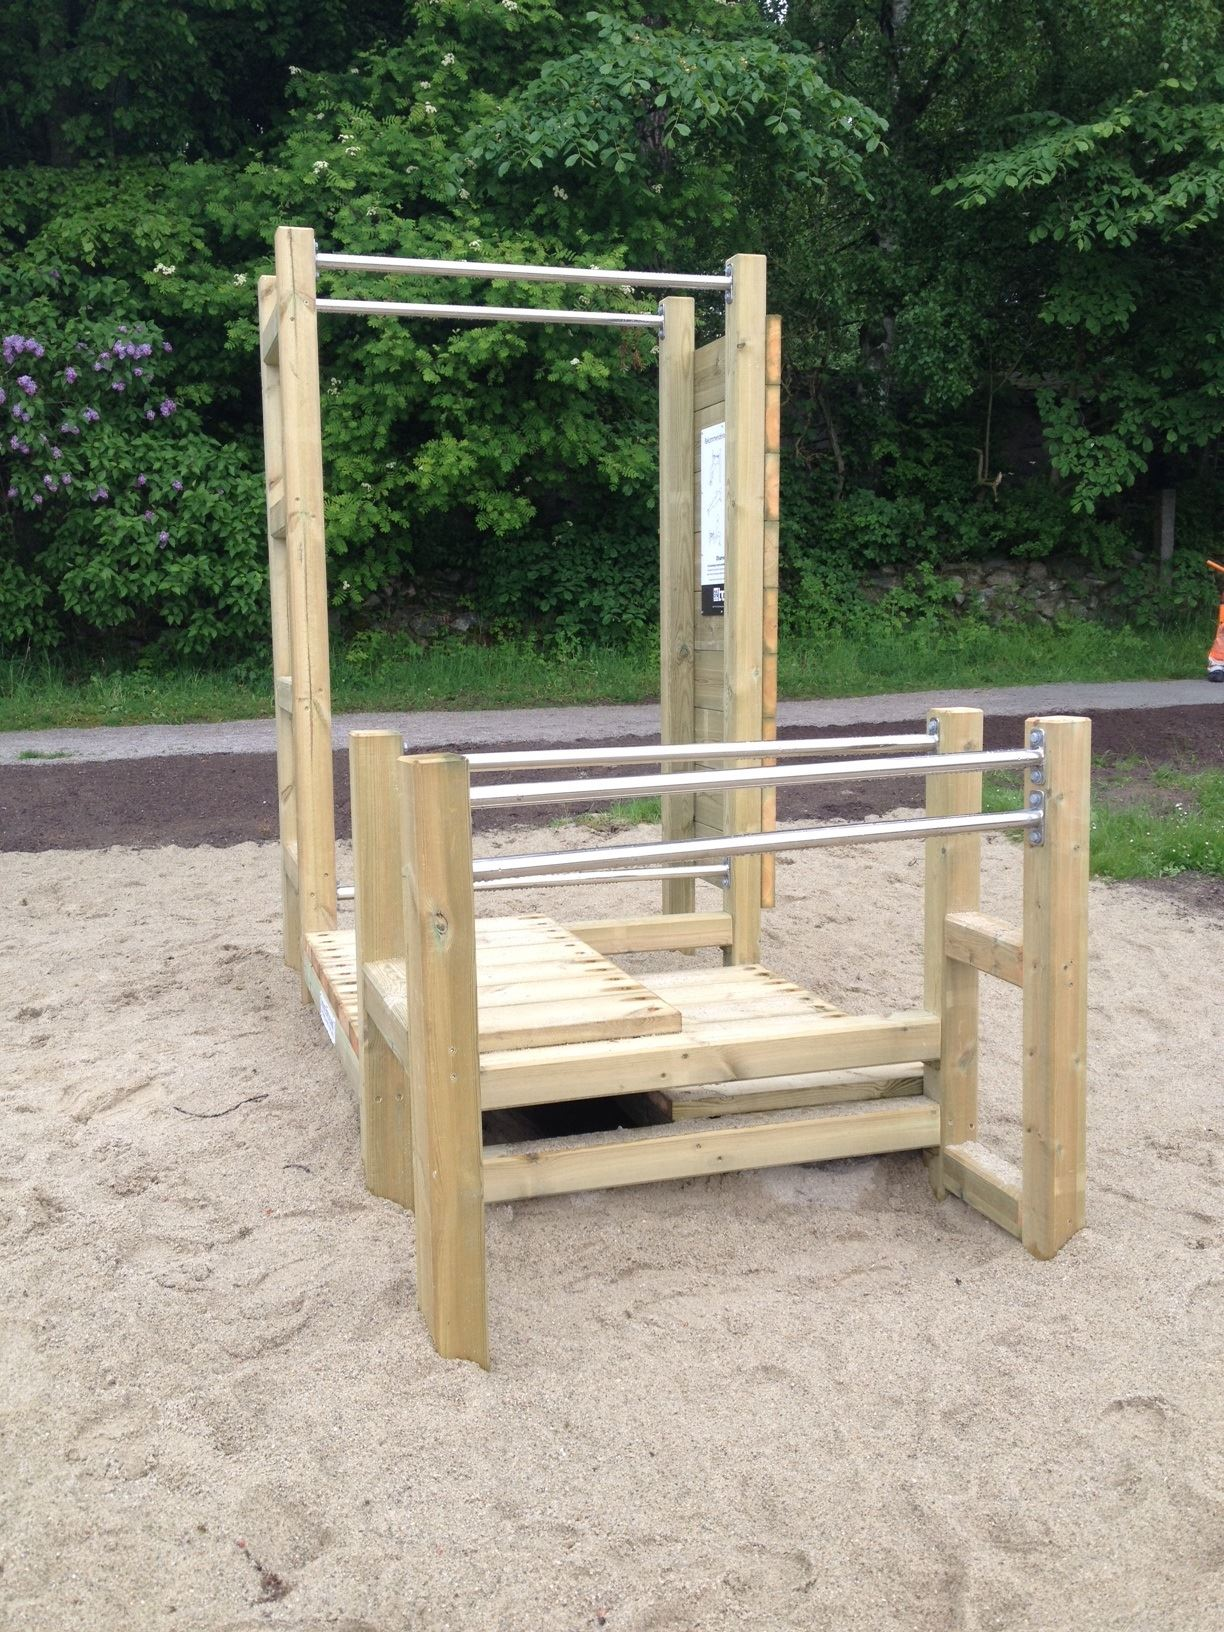 Outdoor gym at Strandängen